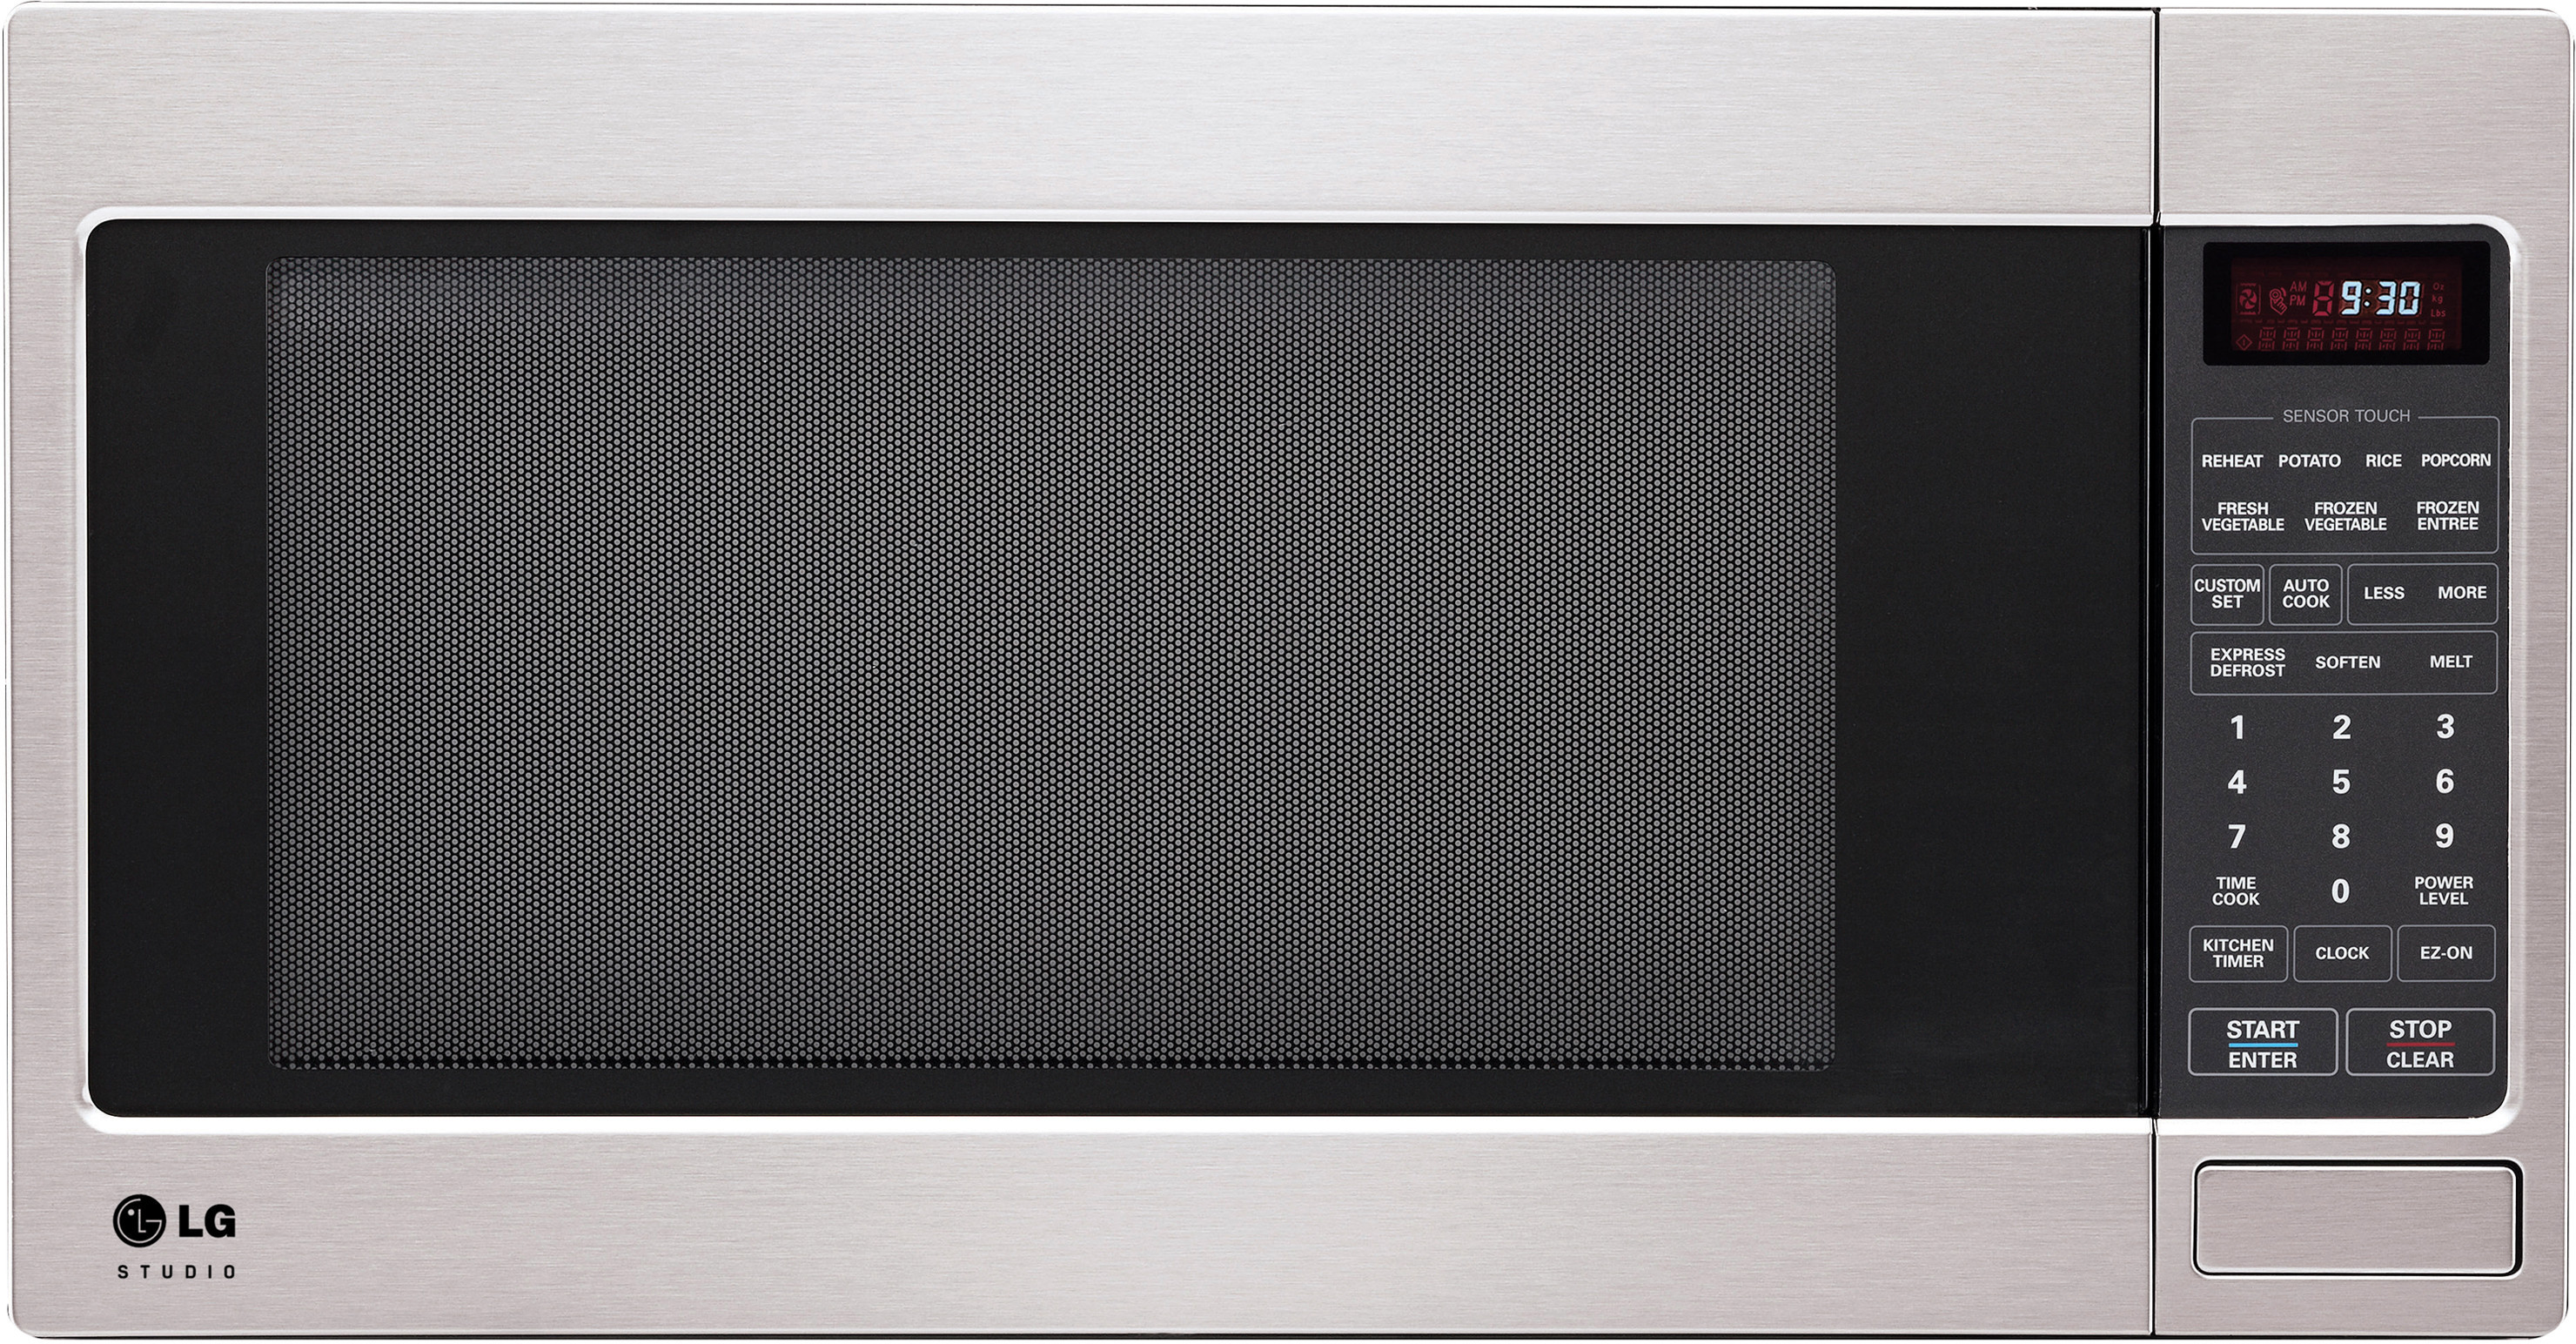 14 inch microwave bestmicrowave for Built in microwave 24 inches wide